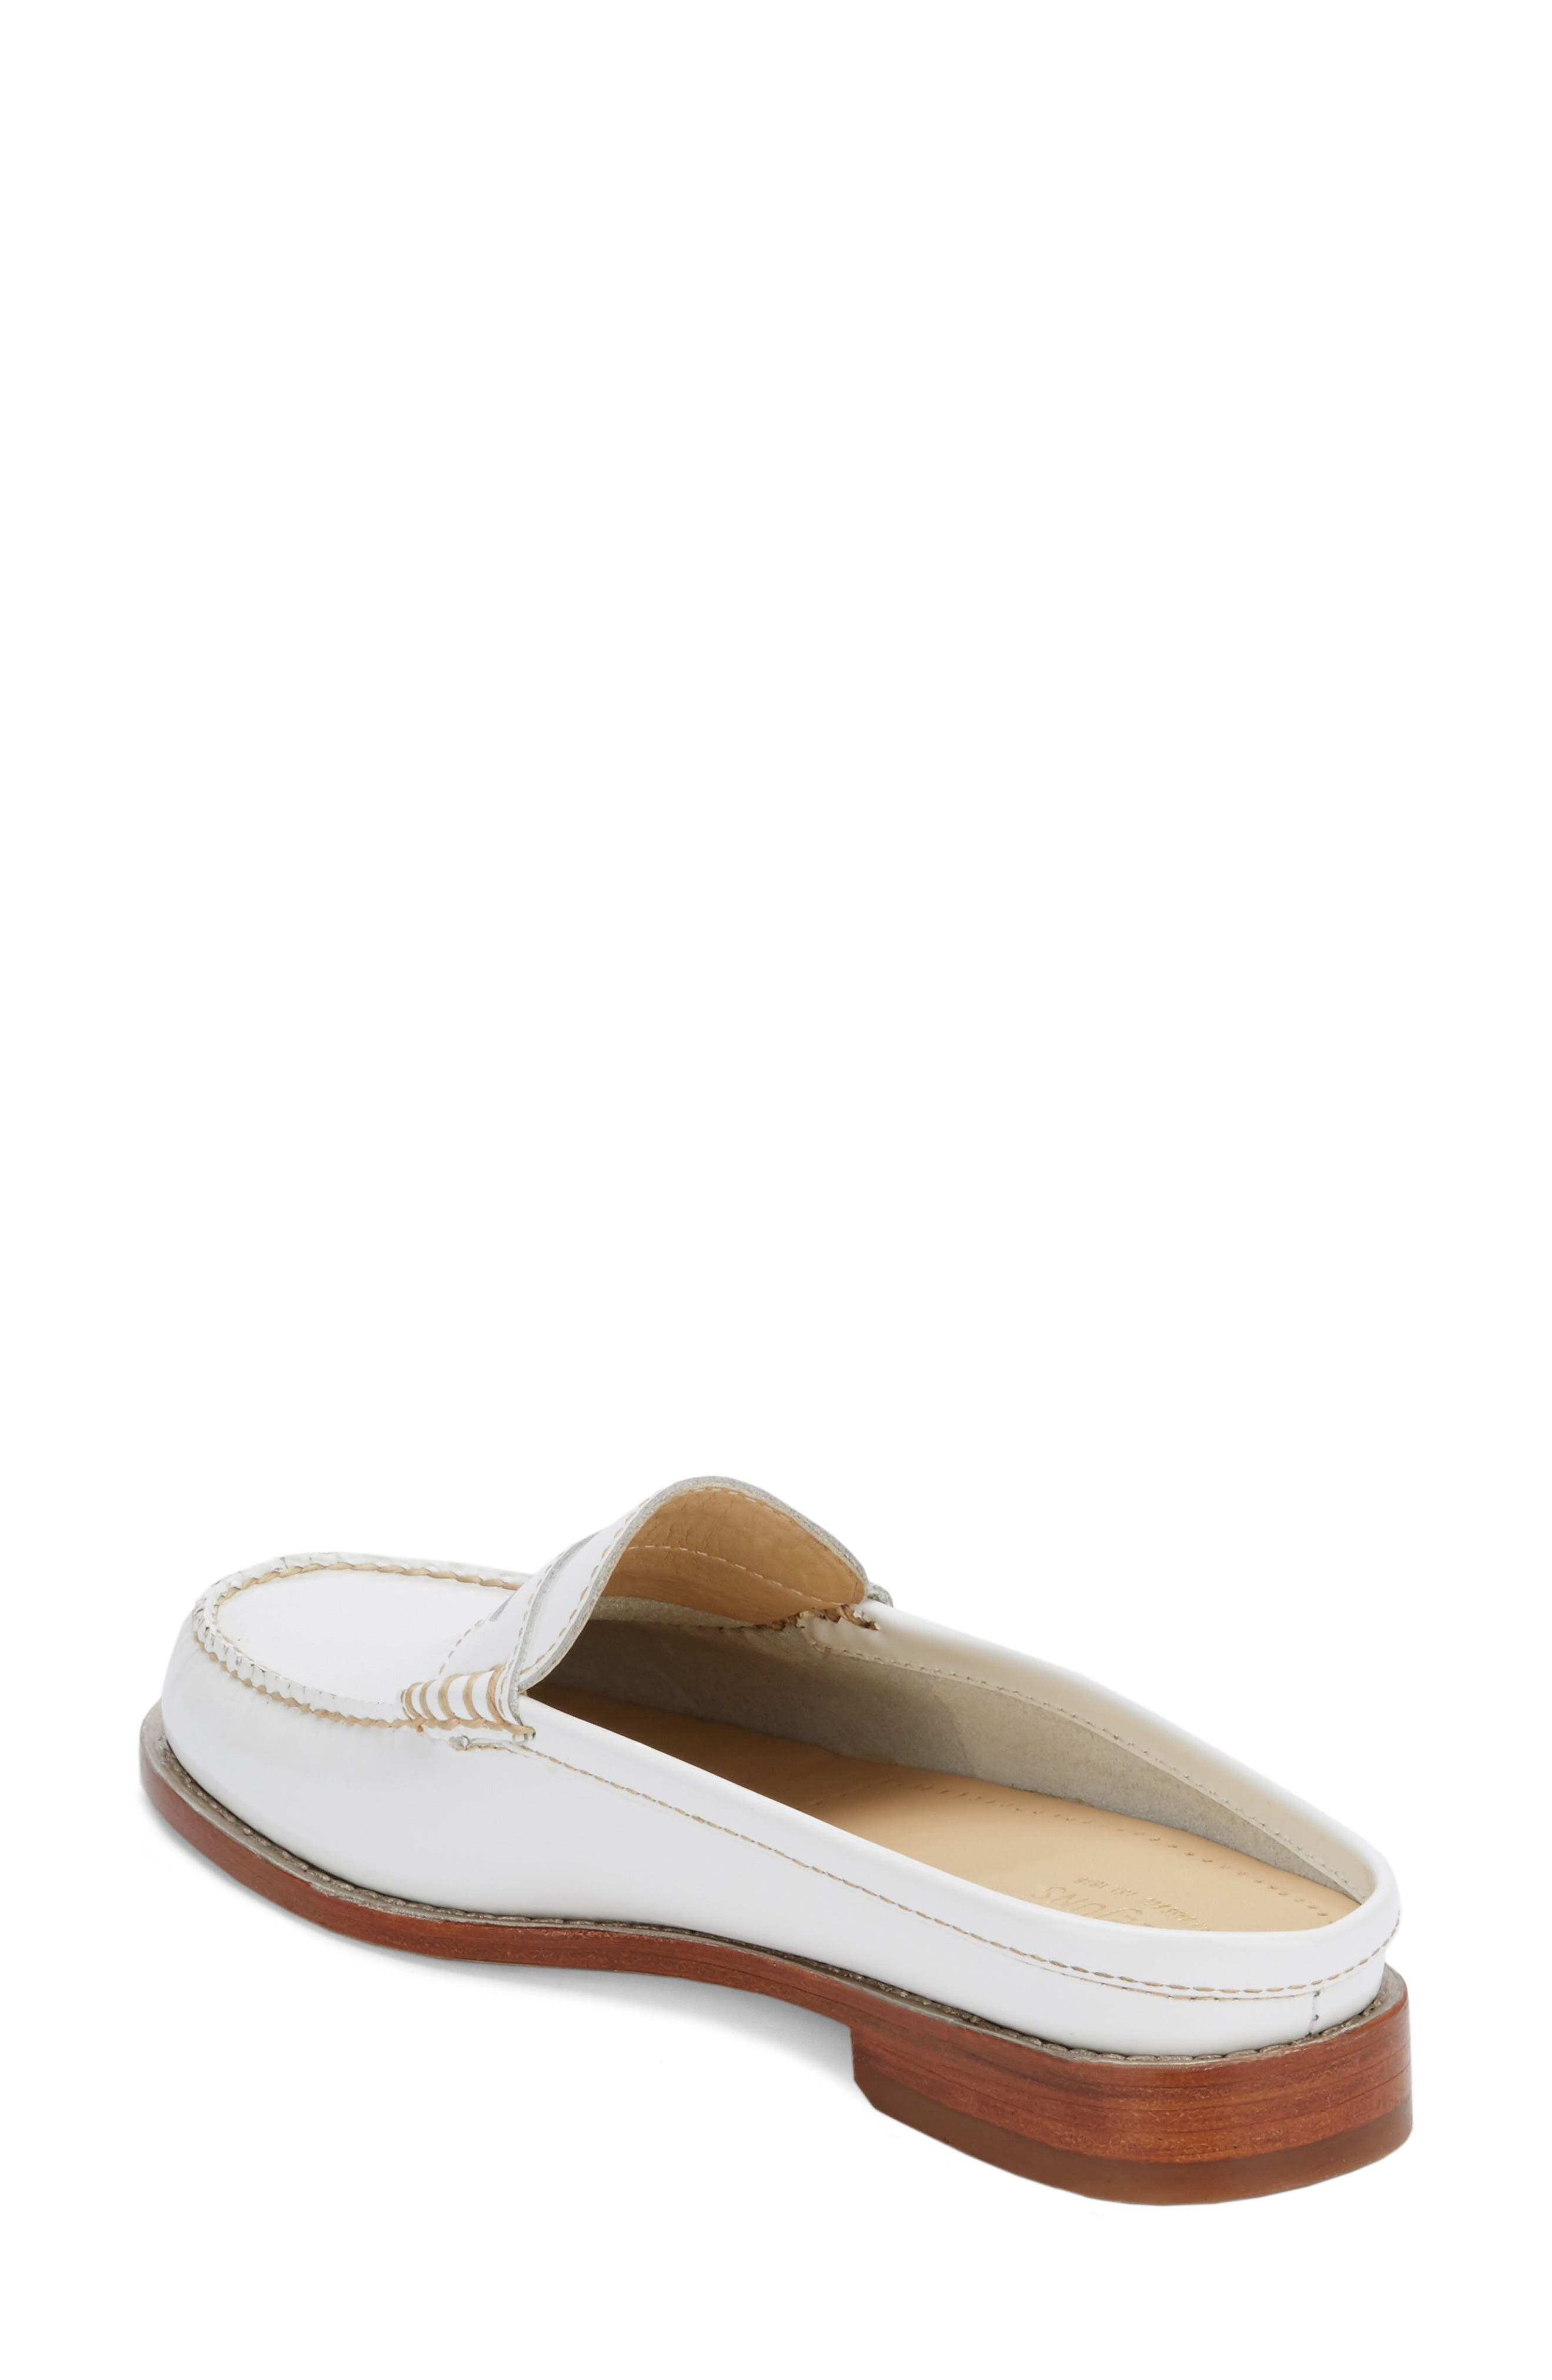 Wynn Loafer Mule,                             Alternate thumbnail 44, color,